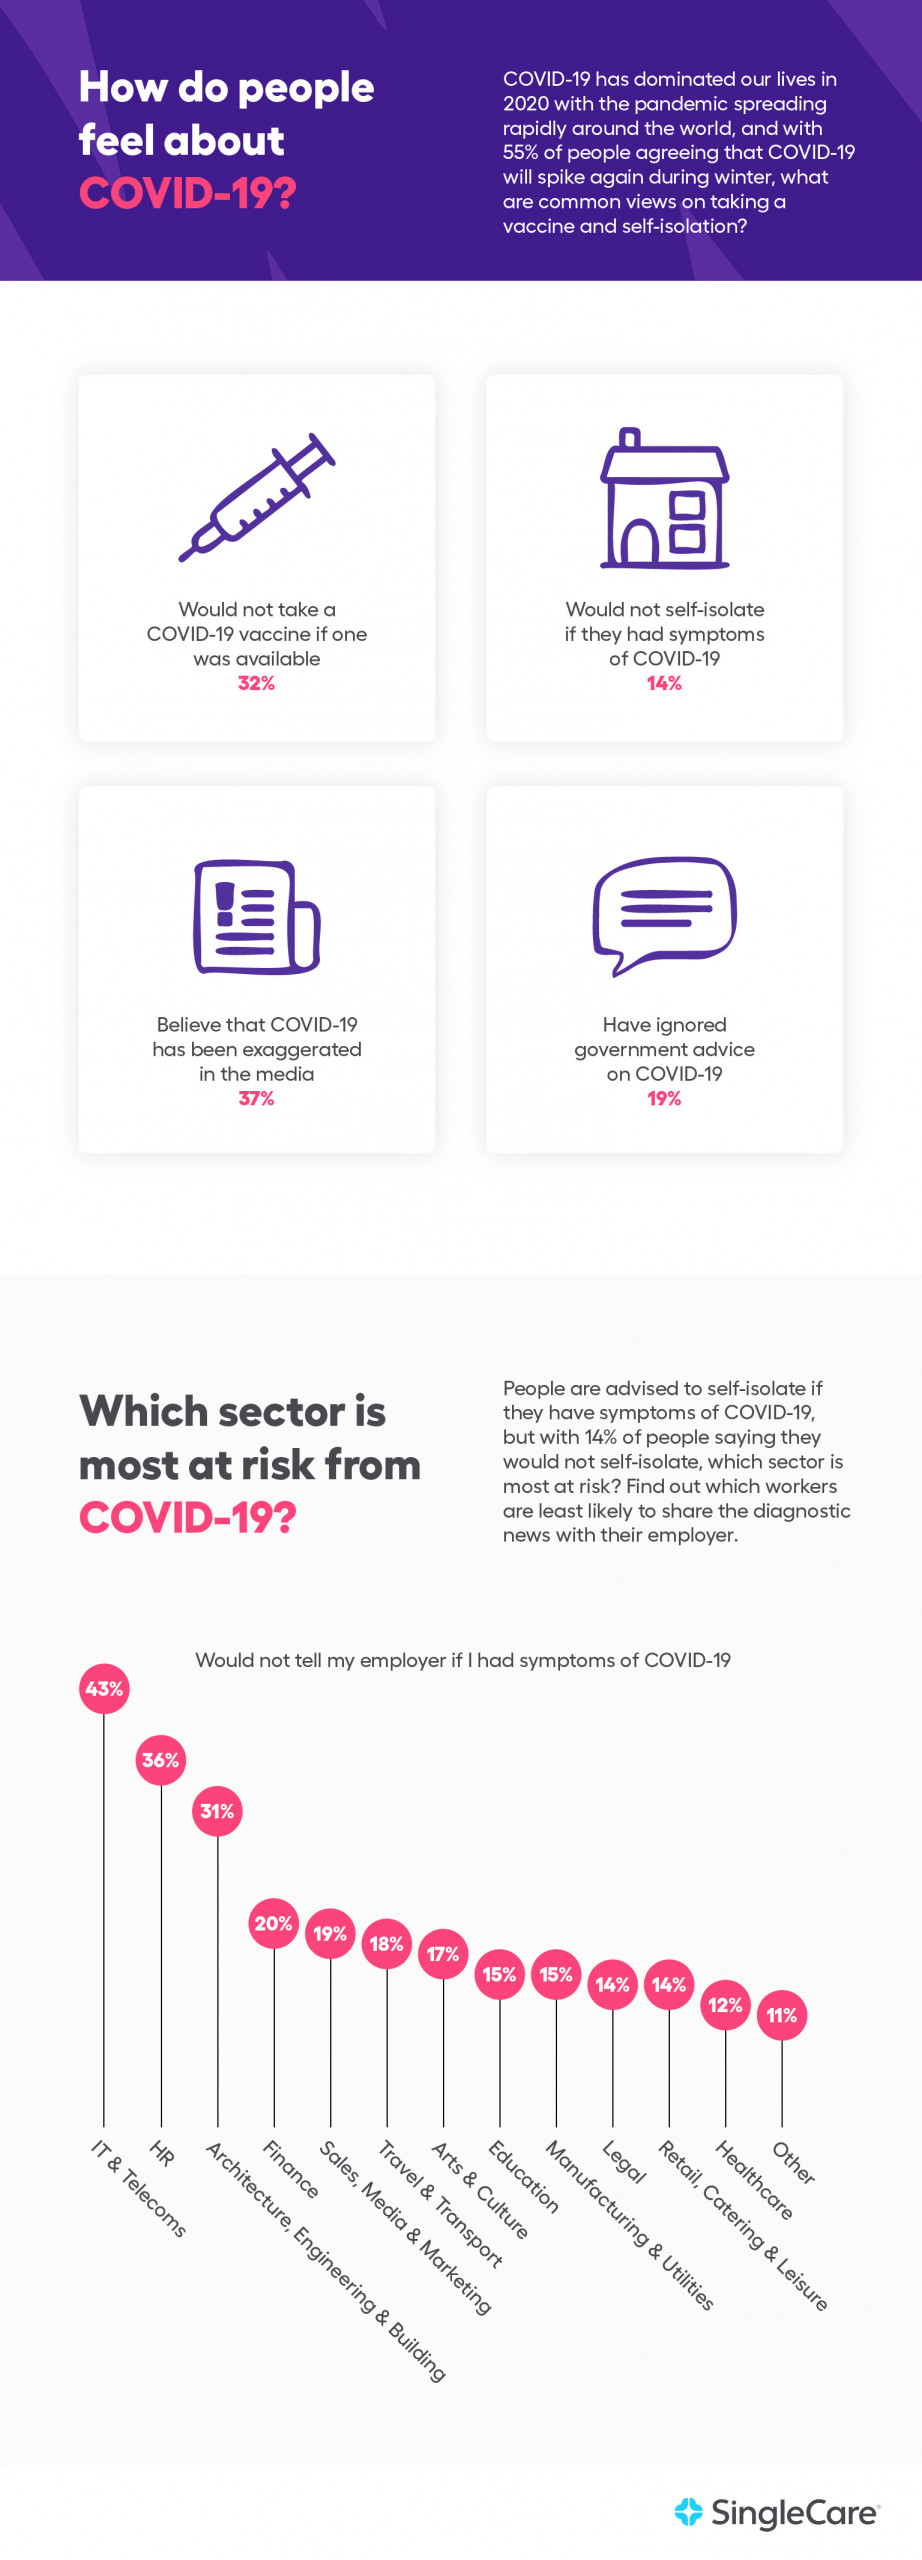 How people feel about COVID-19 chart with a graph comparing sectors most at risk from COVID-19